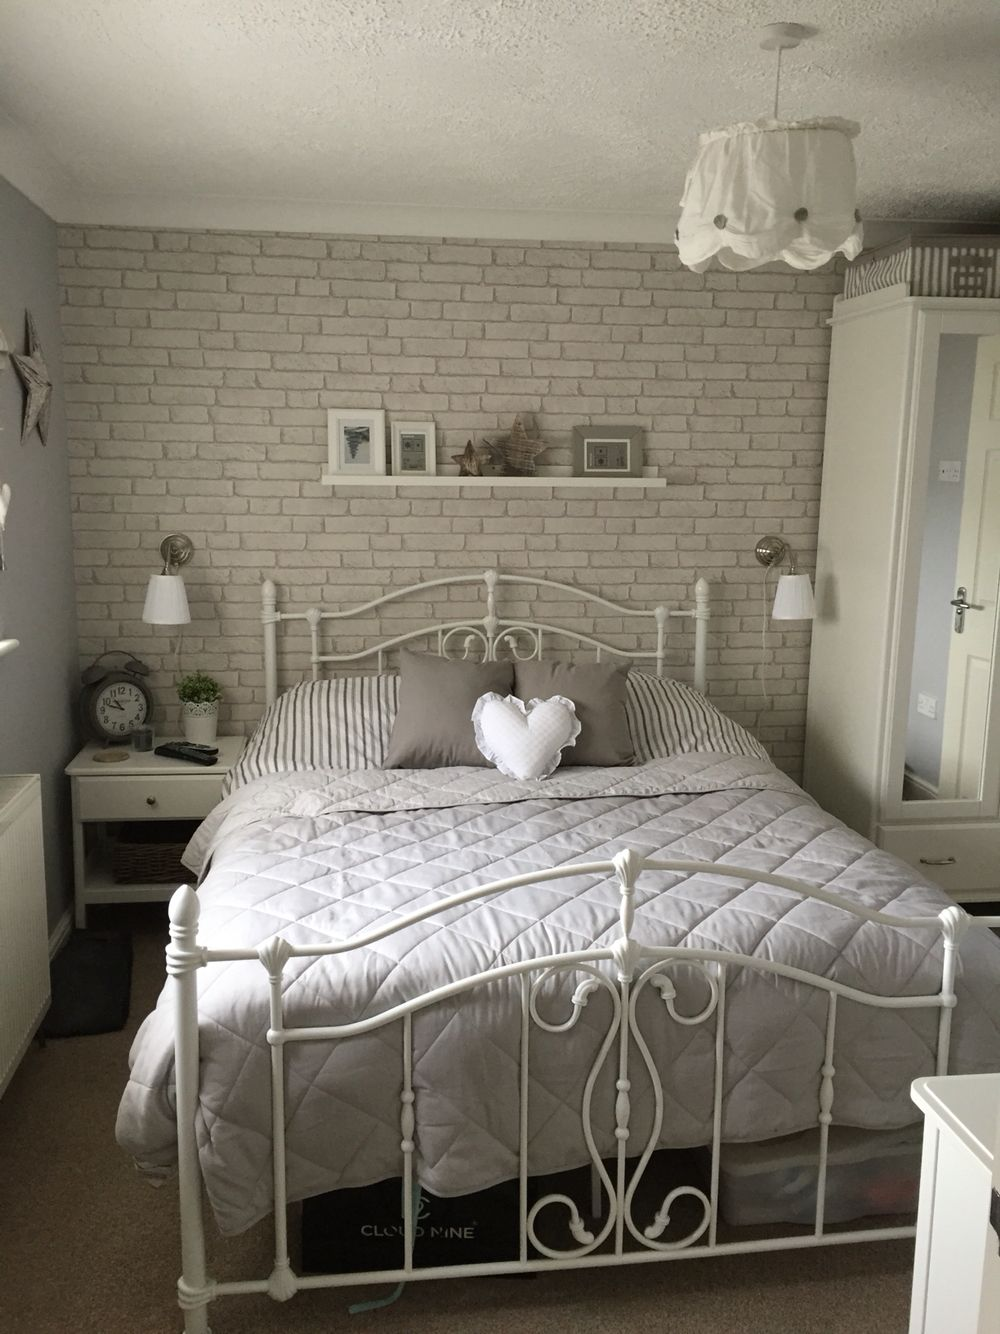 Brick wallpaper … | Bedroom in 2019 | Brick wallpaper ...